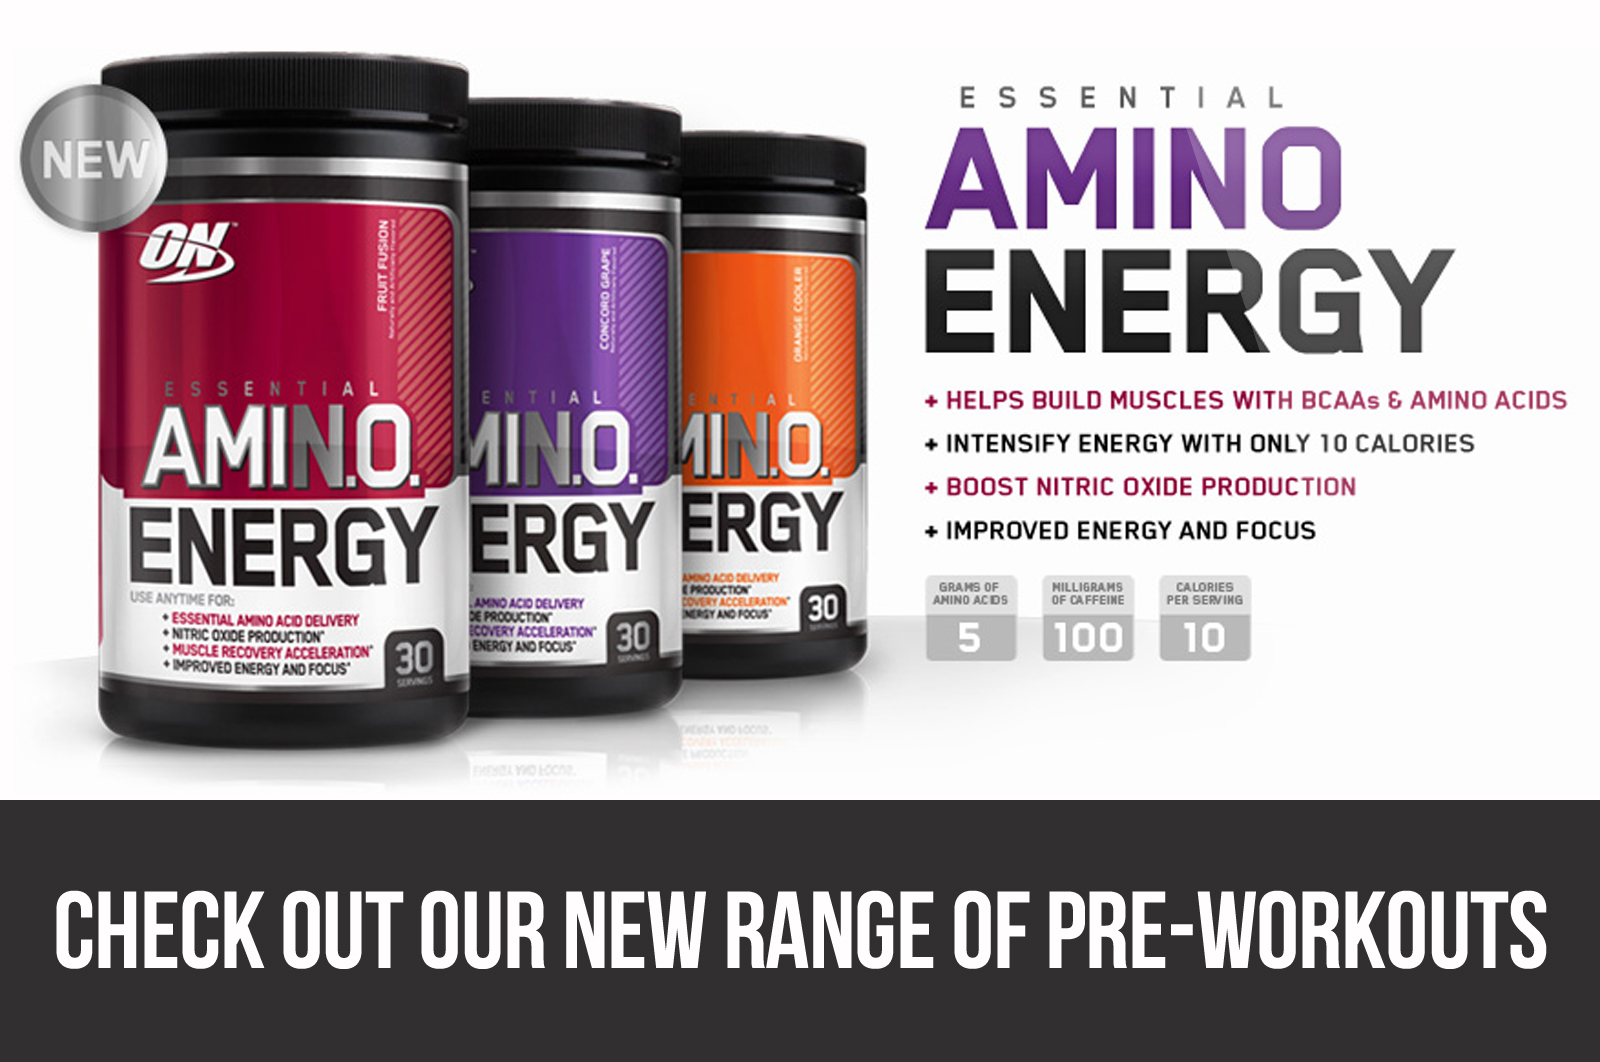 2015-12-15-Newsletter-Supp-Offers-re-Pre-Workout